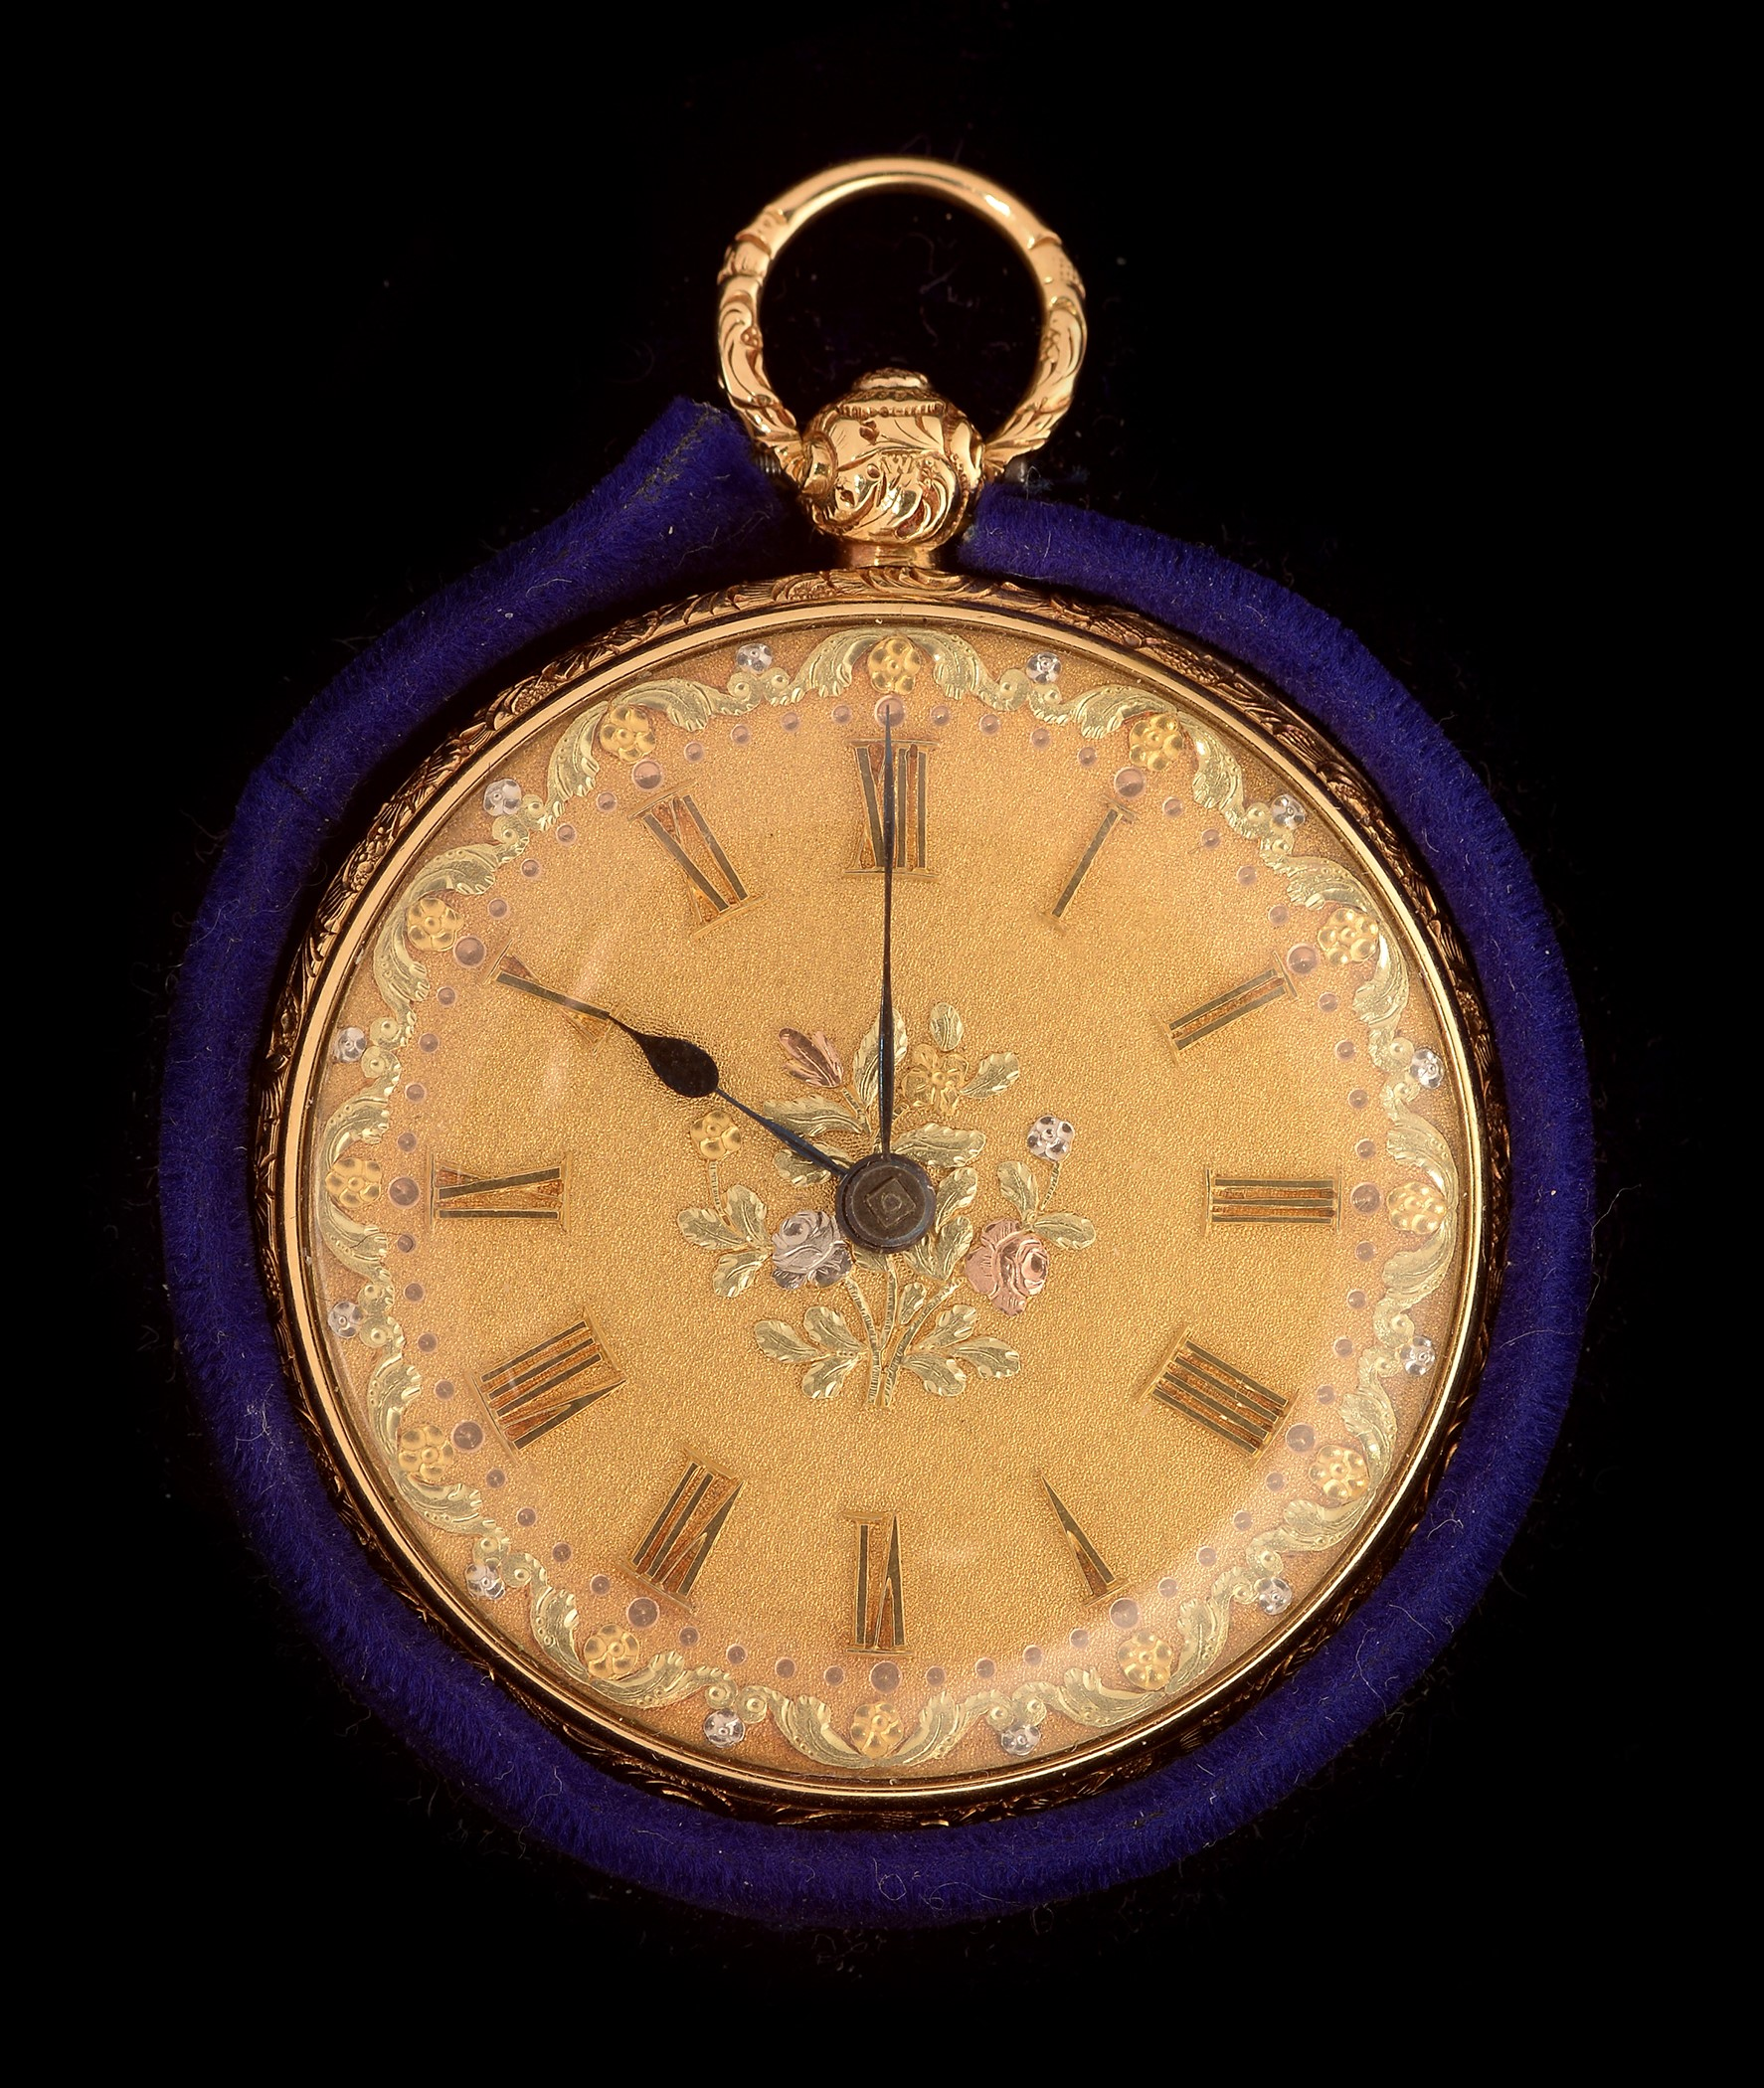 Lot 30 - 18k gold lady's pocket watch